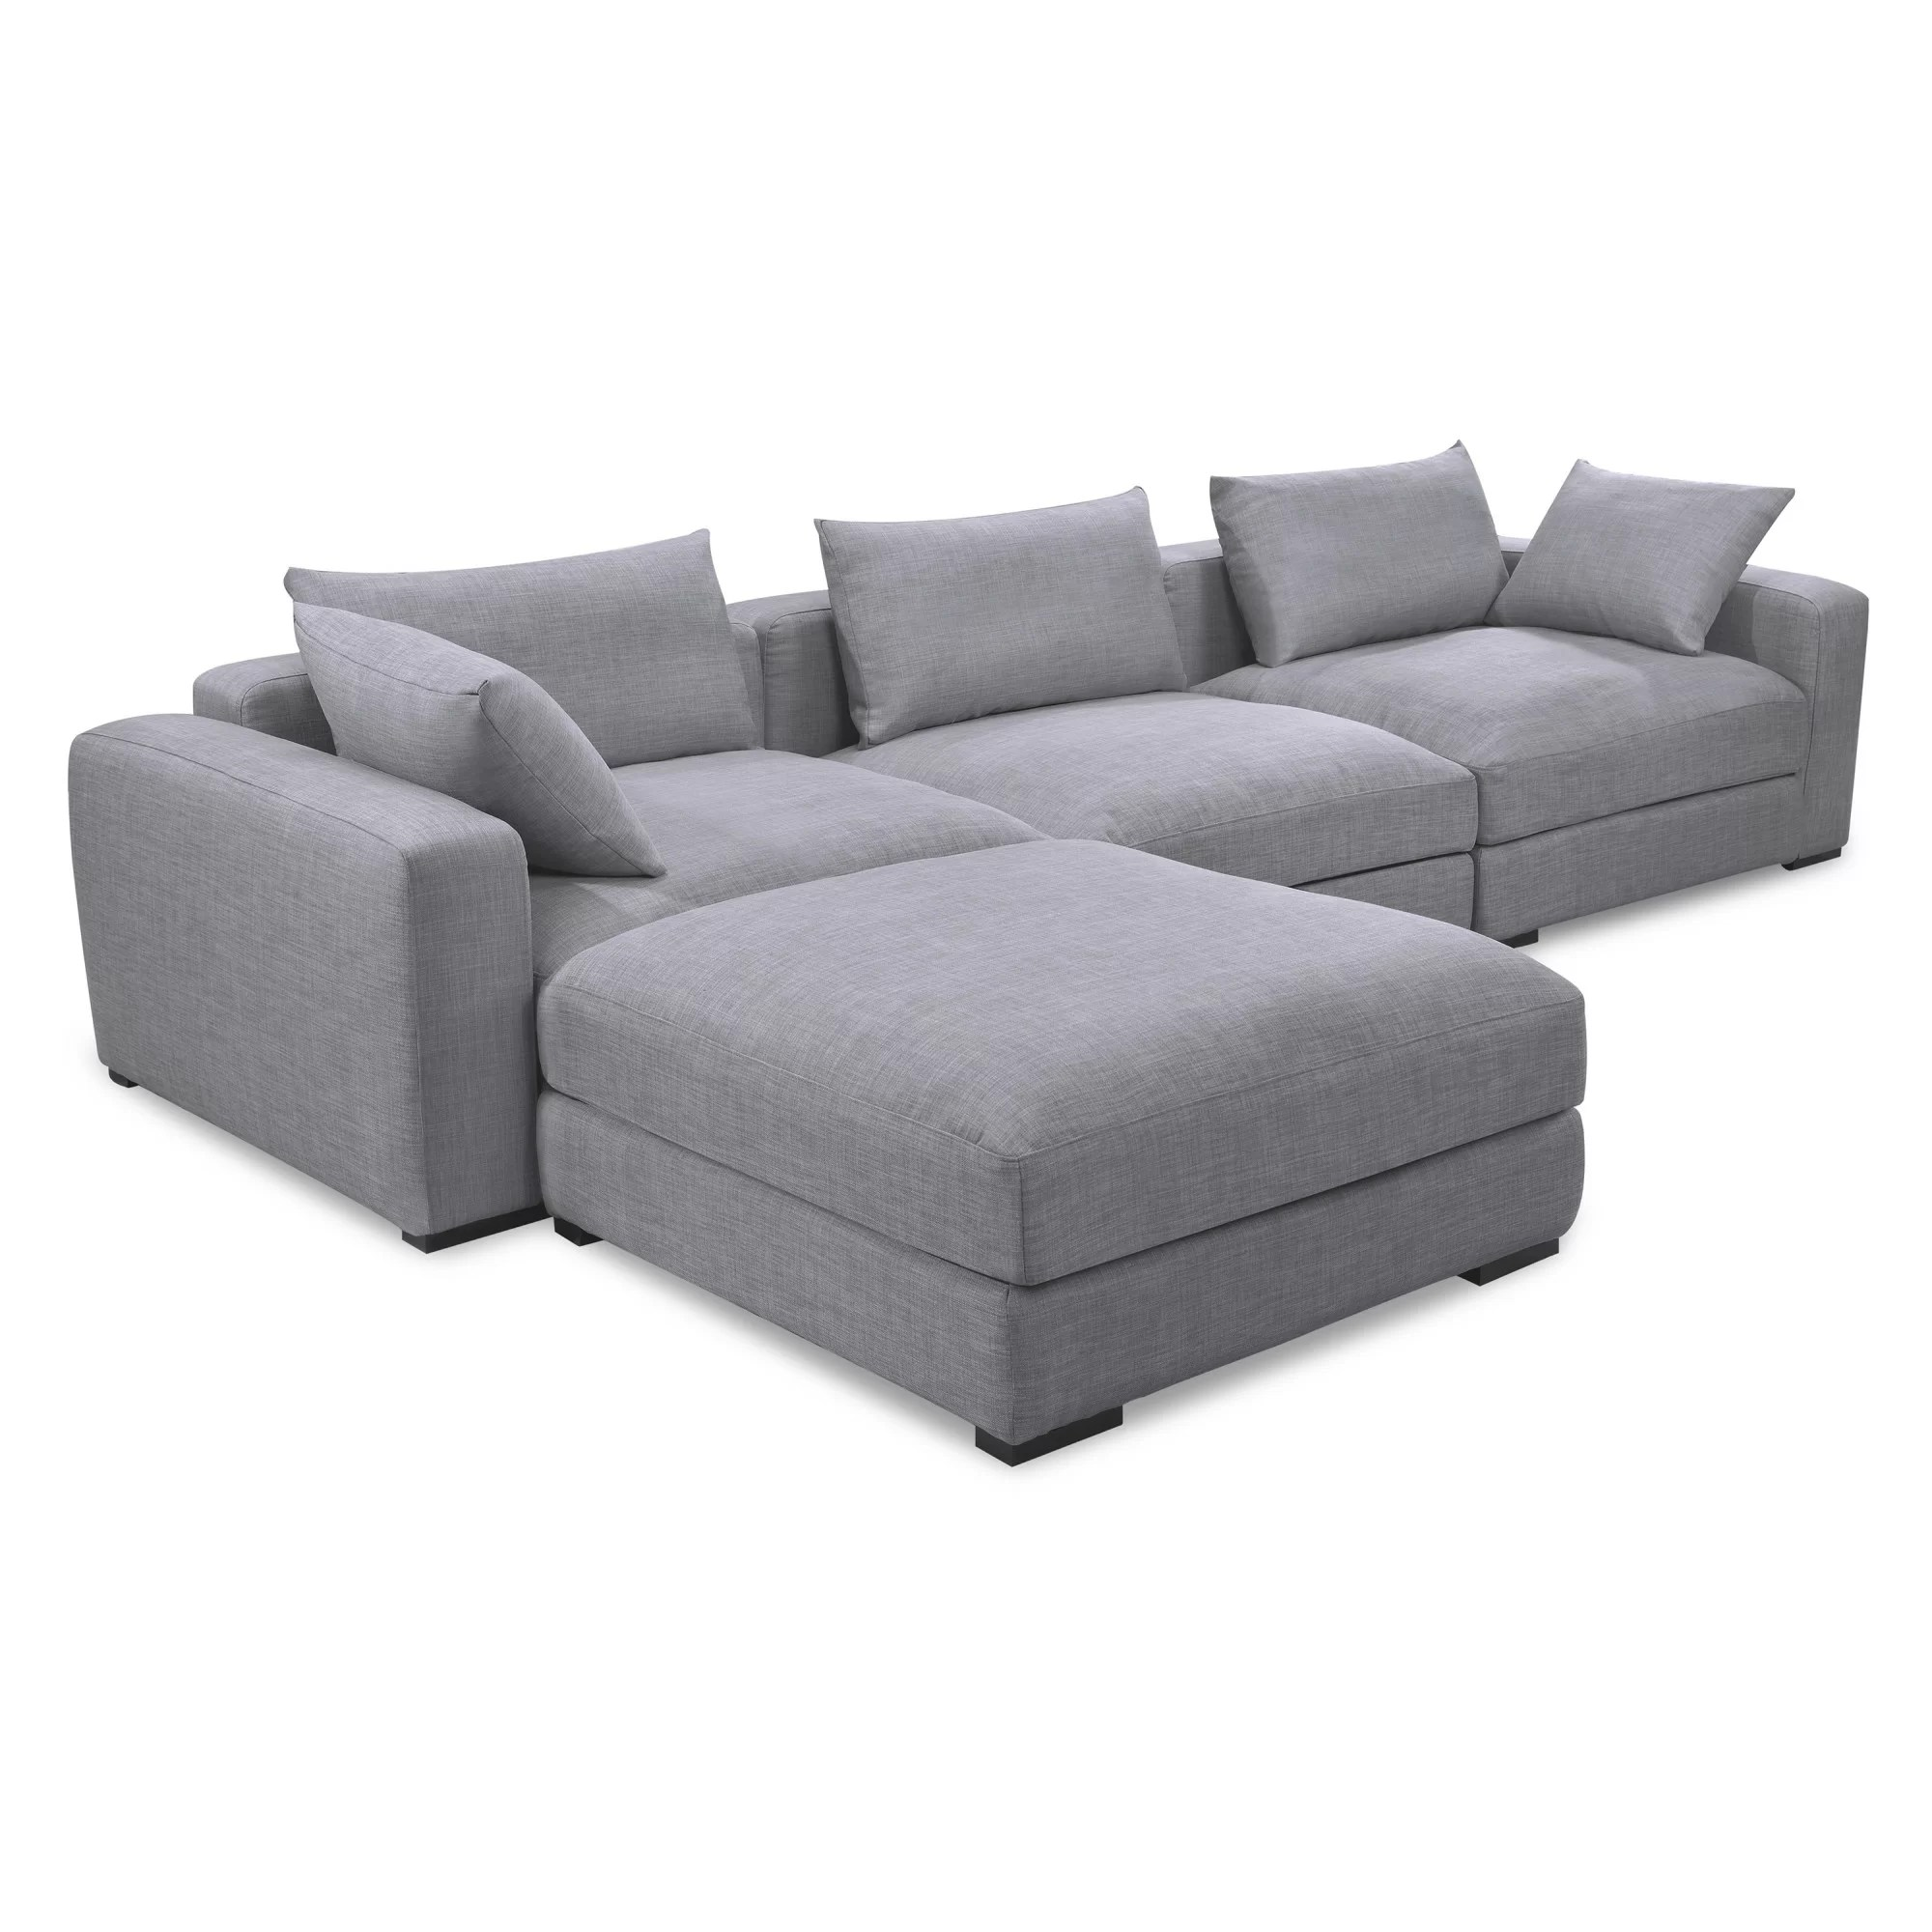 Sofa Relax Con Usb Remissa Sectional